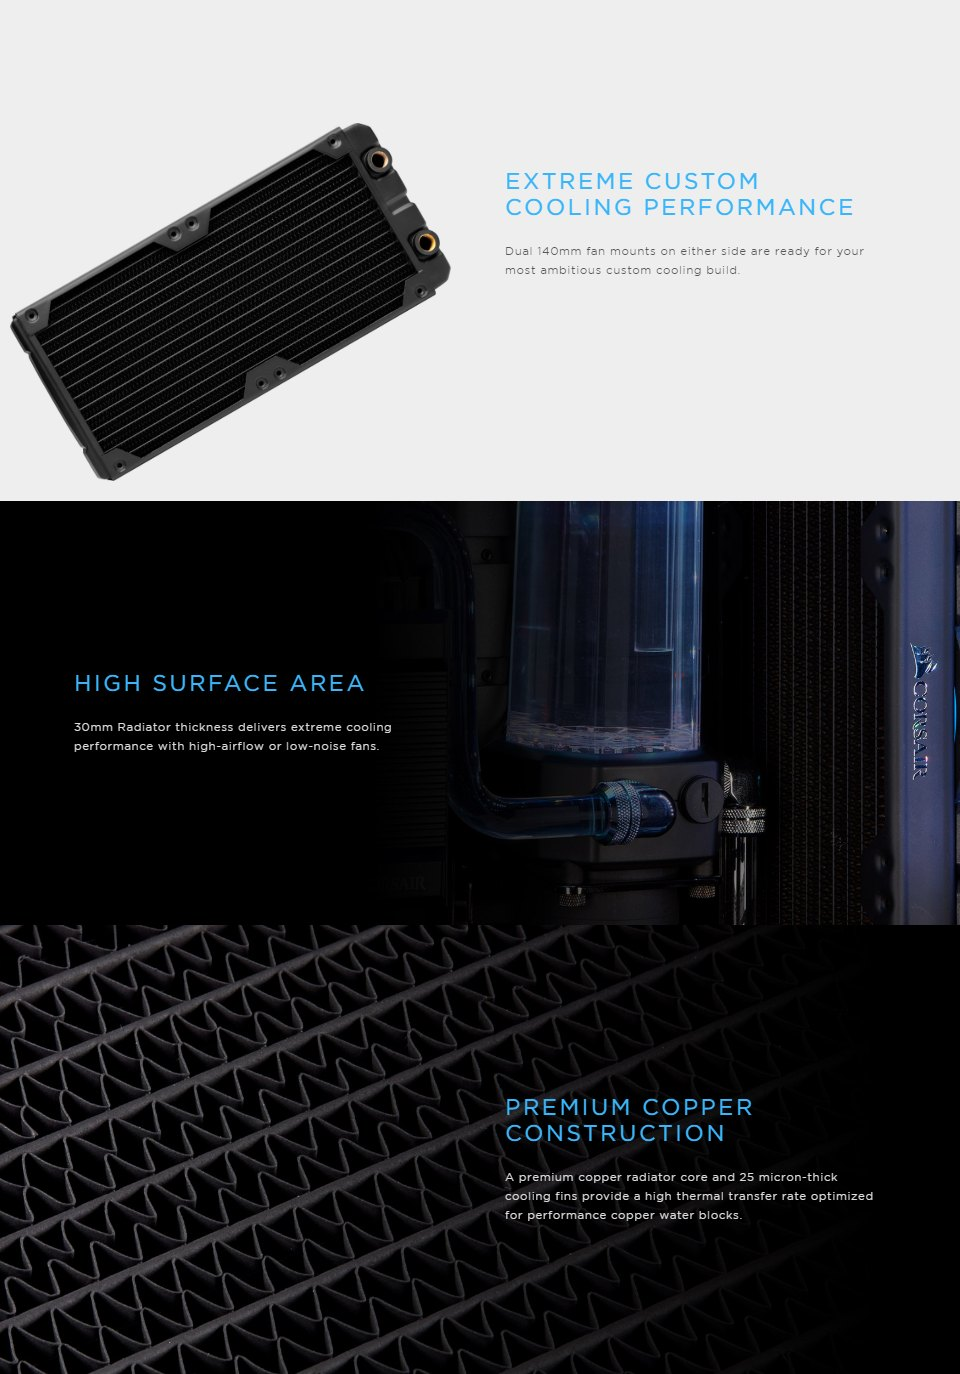 Corsair Hydro X Series XR5 280mm Water Cooling Radiator features